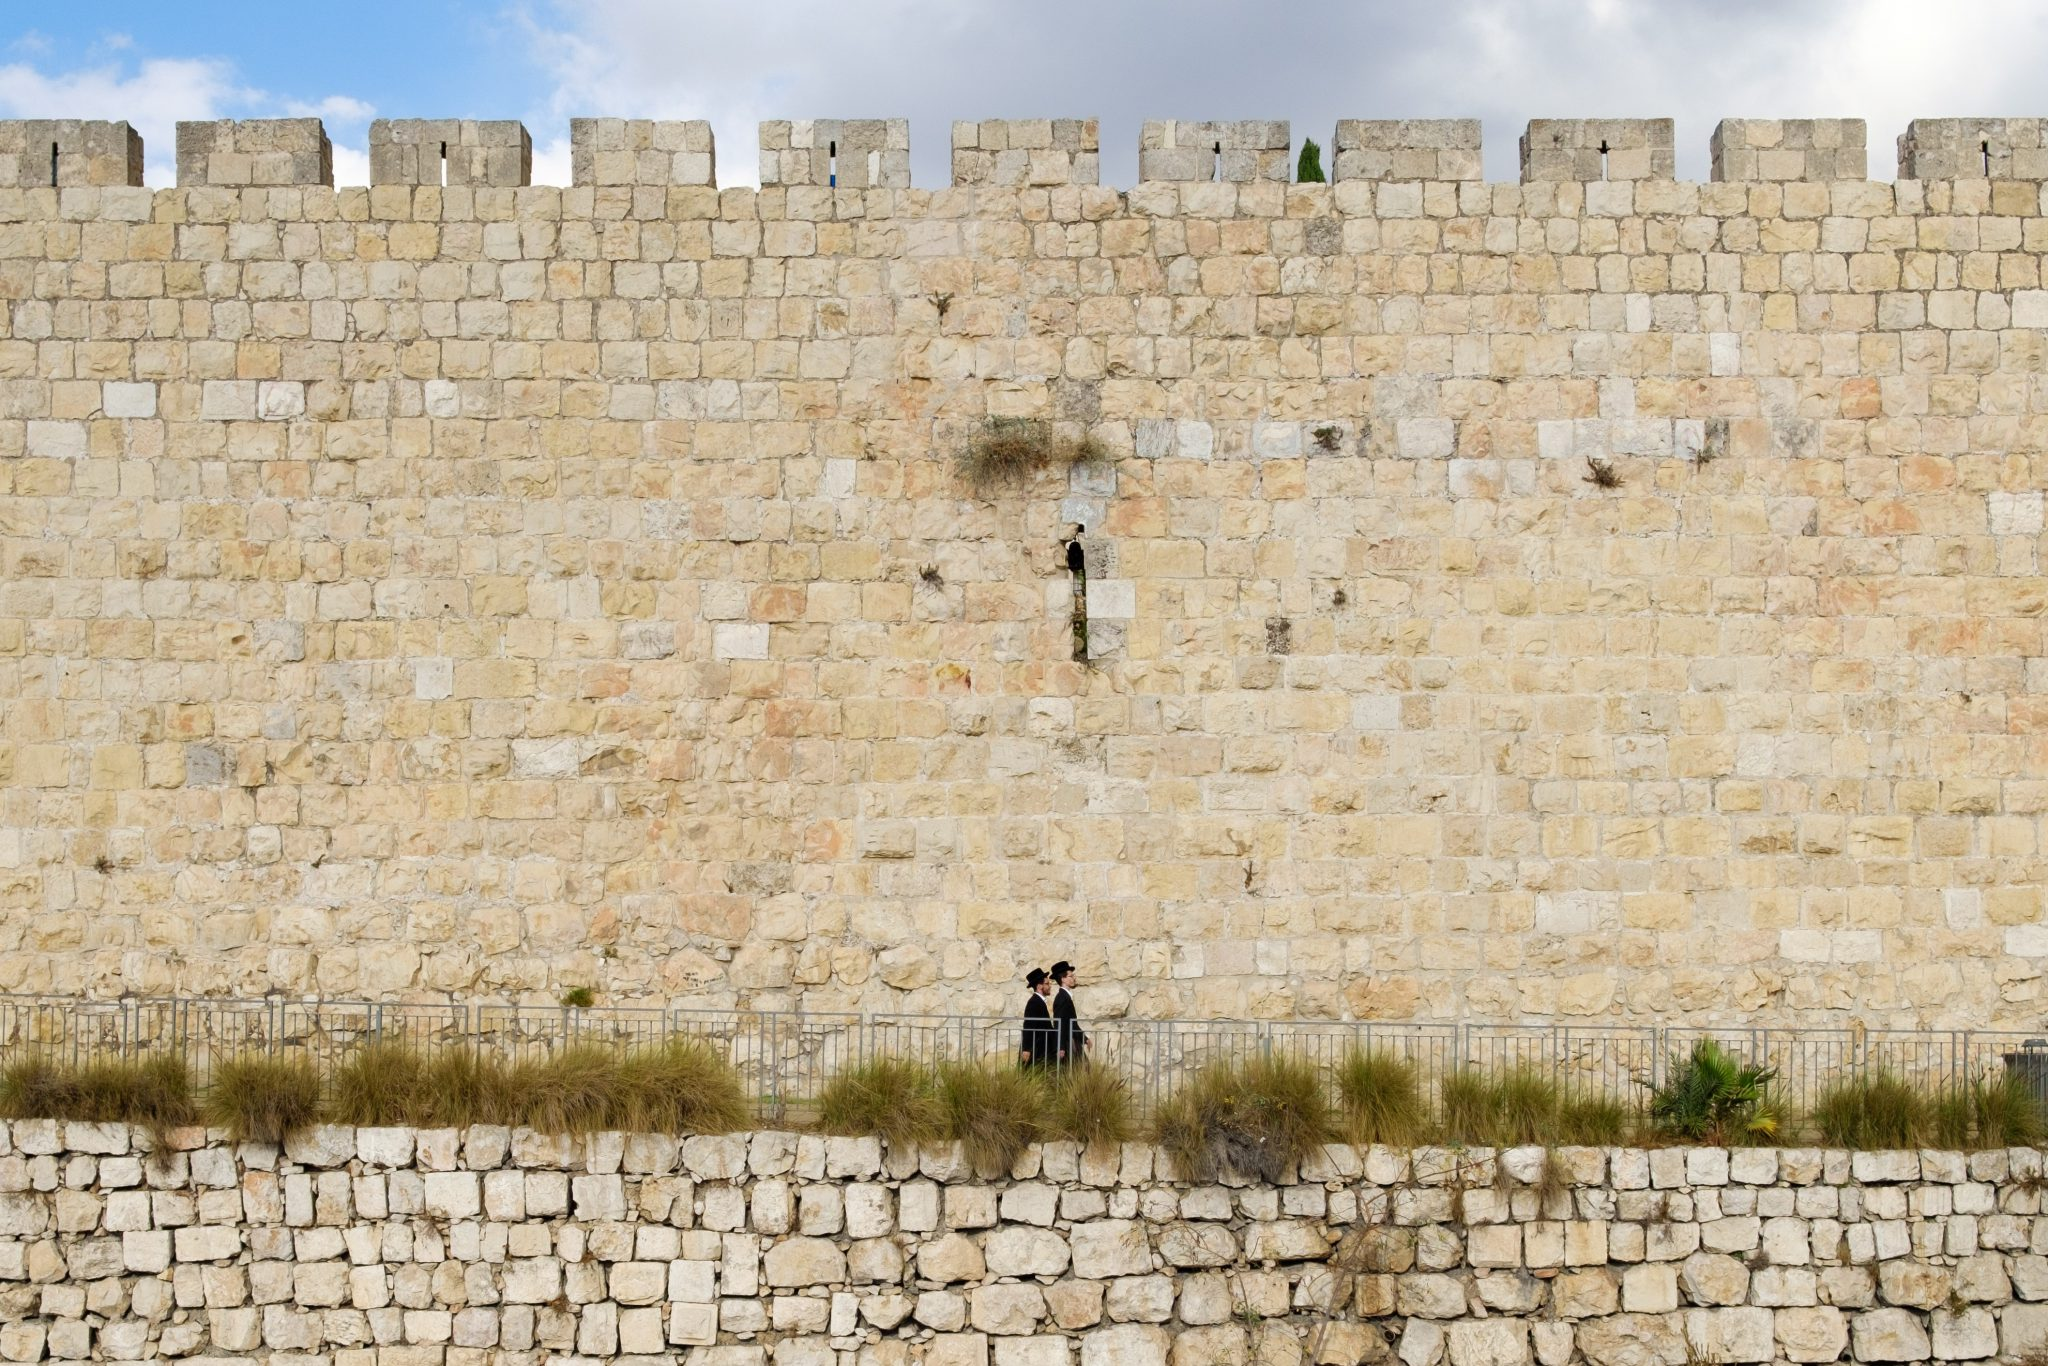 Walls in the Bible